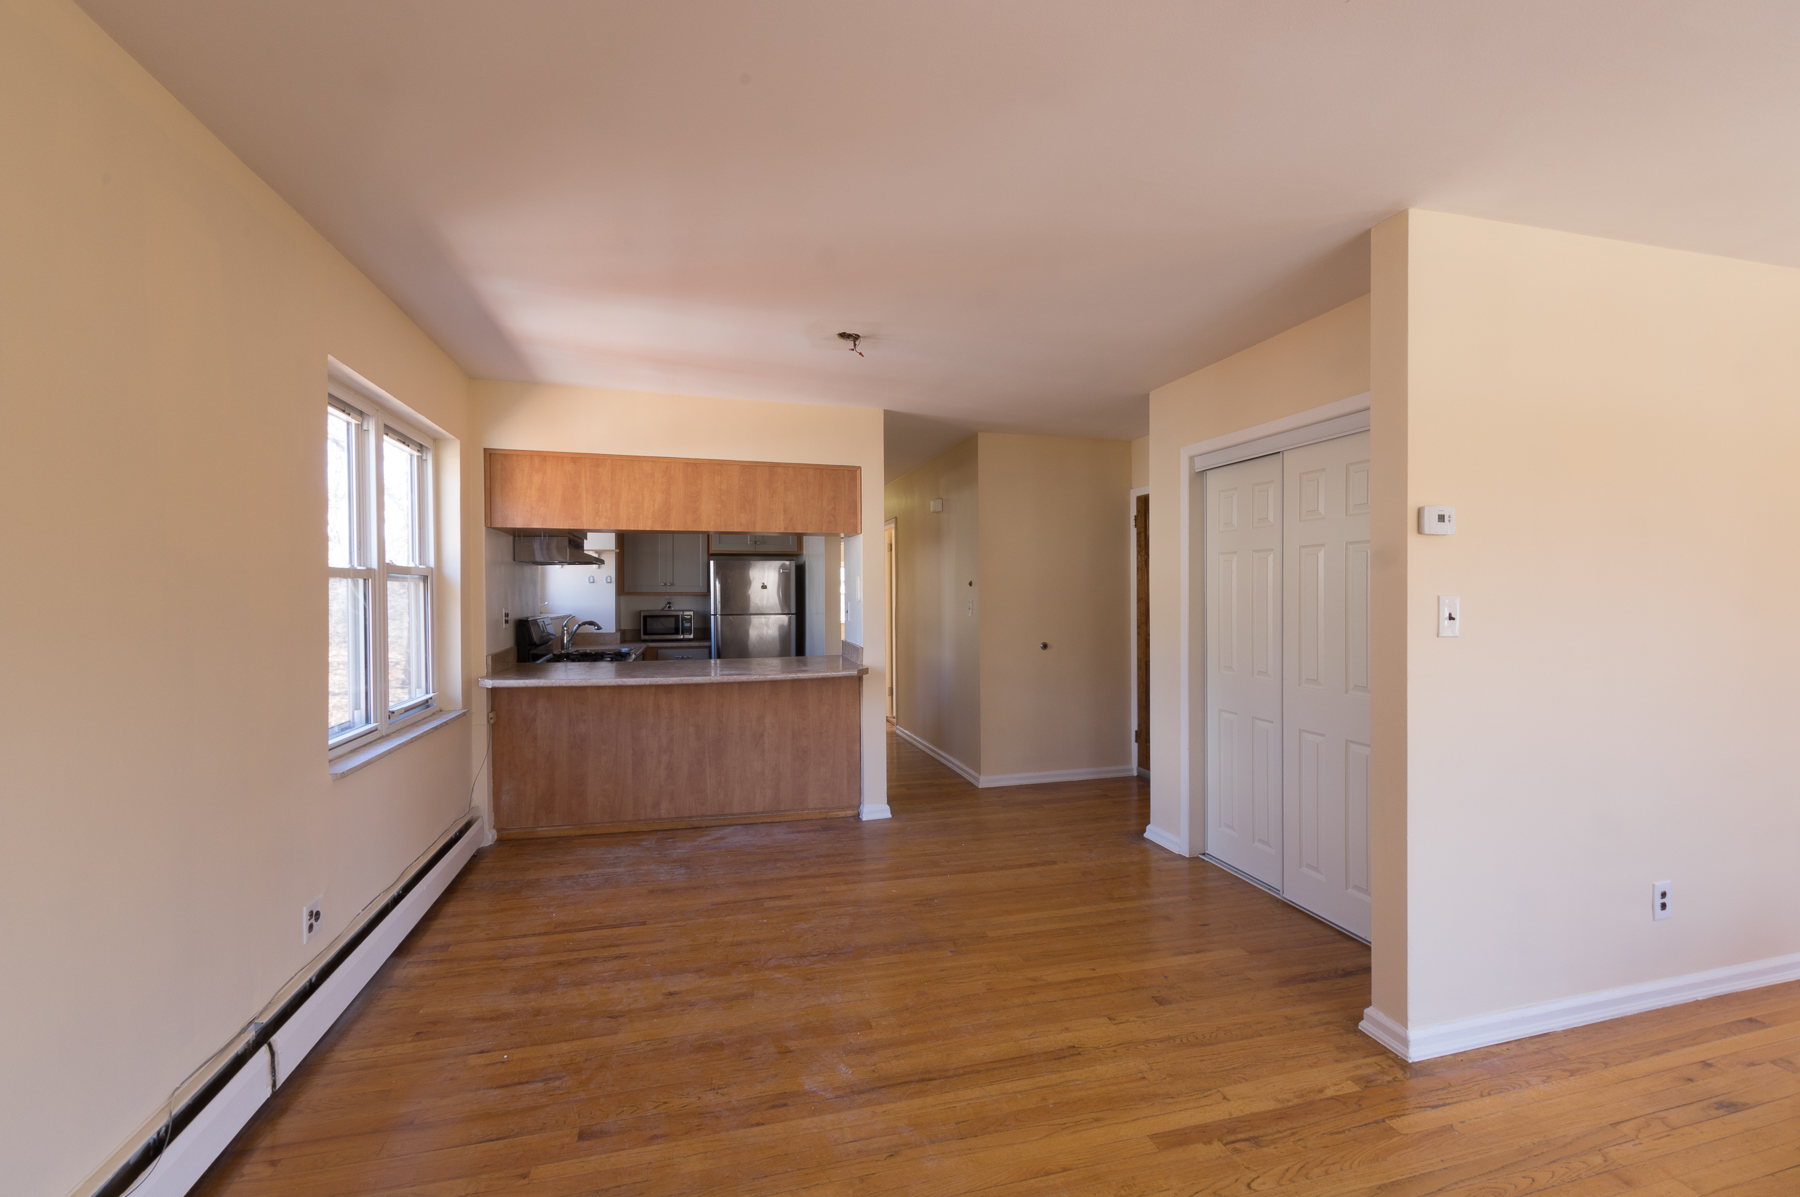 rentals property at North Riverdale Large 3 BR, 2 Bath in Private House. Parking extra.